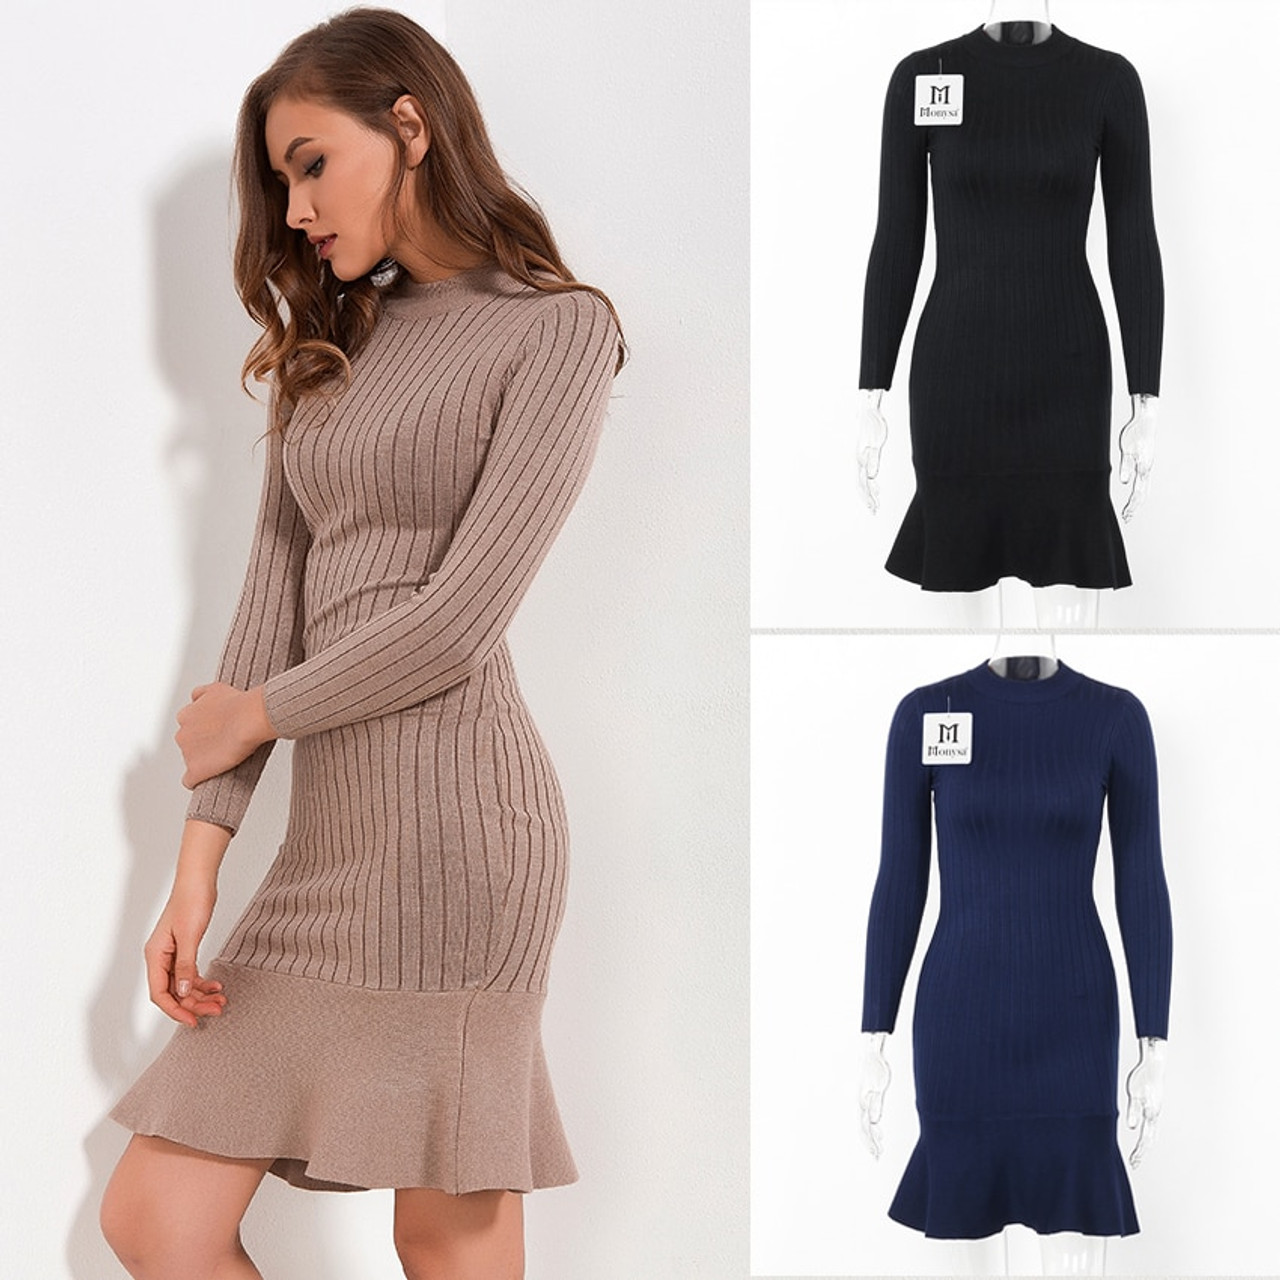 ab3068798be9c ... Ruffle Sweater Dress Autumn Winter 2018 New Arrivals Long Sleeve  Bodycon Dresses Ladies Knee Length Knitted ...